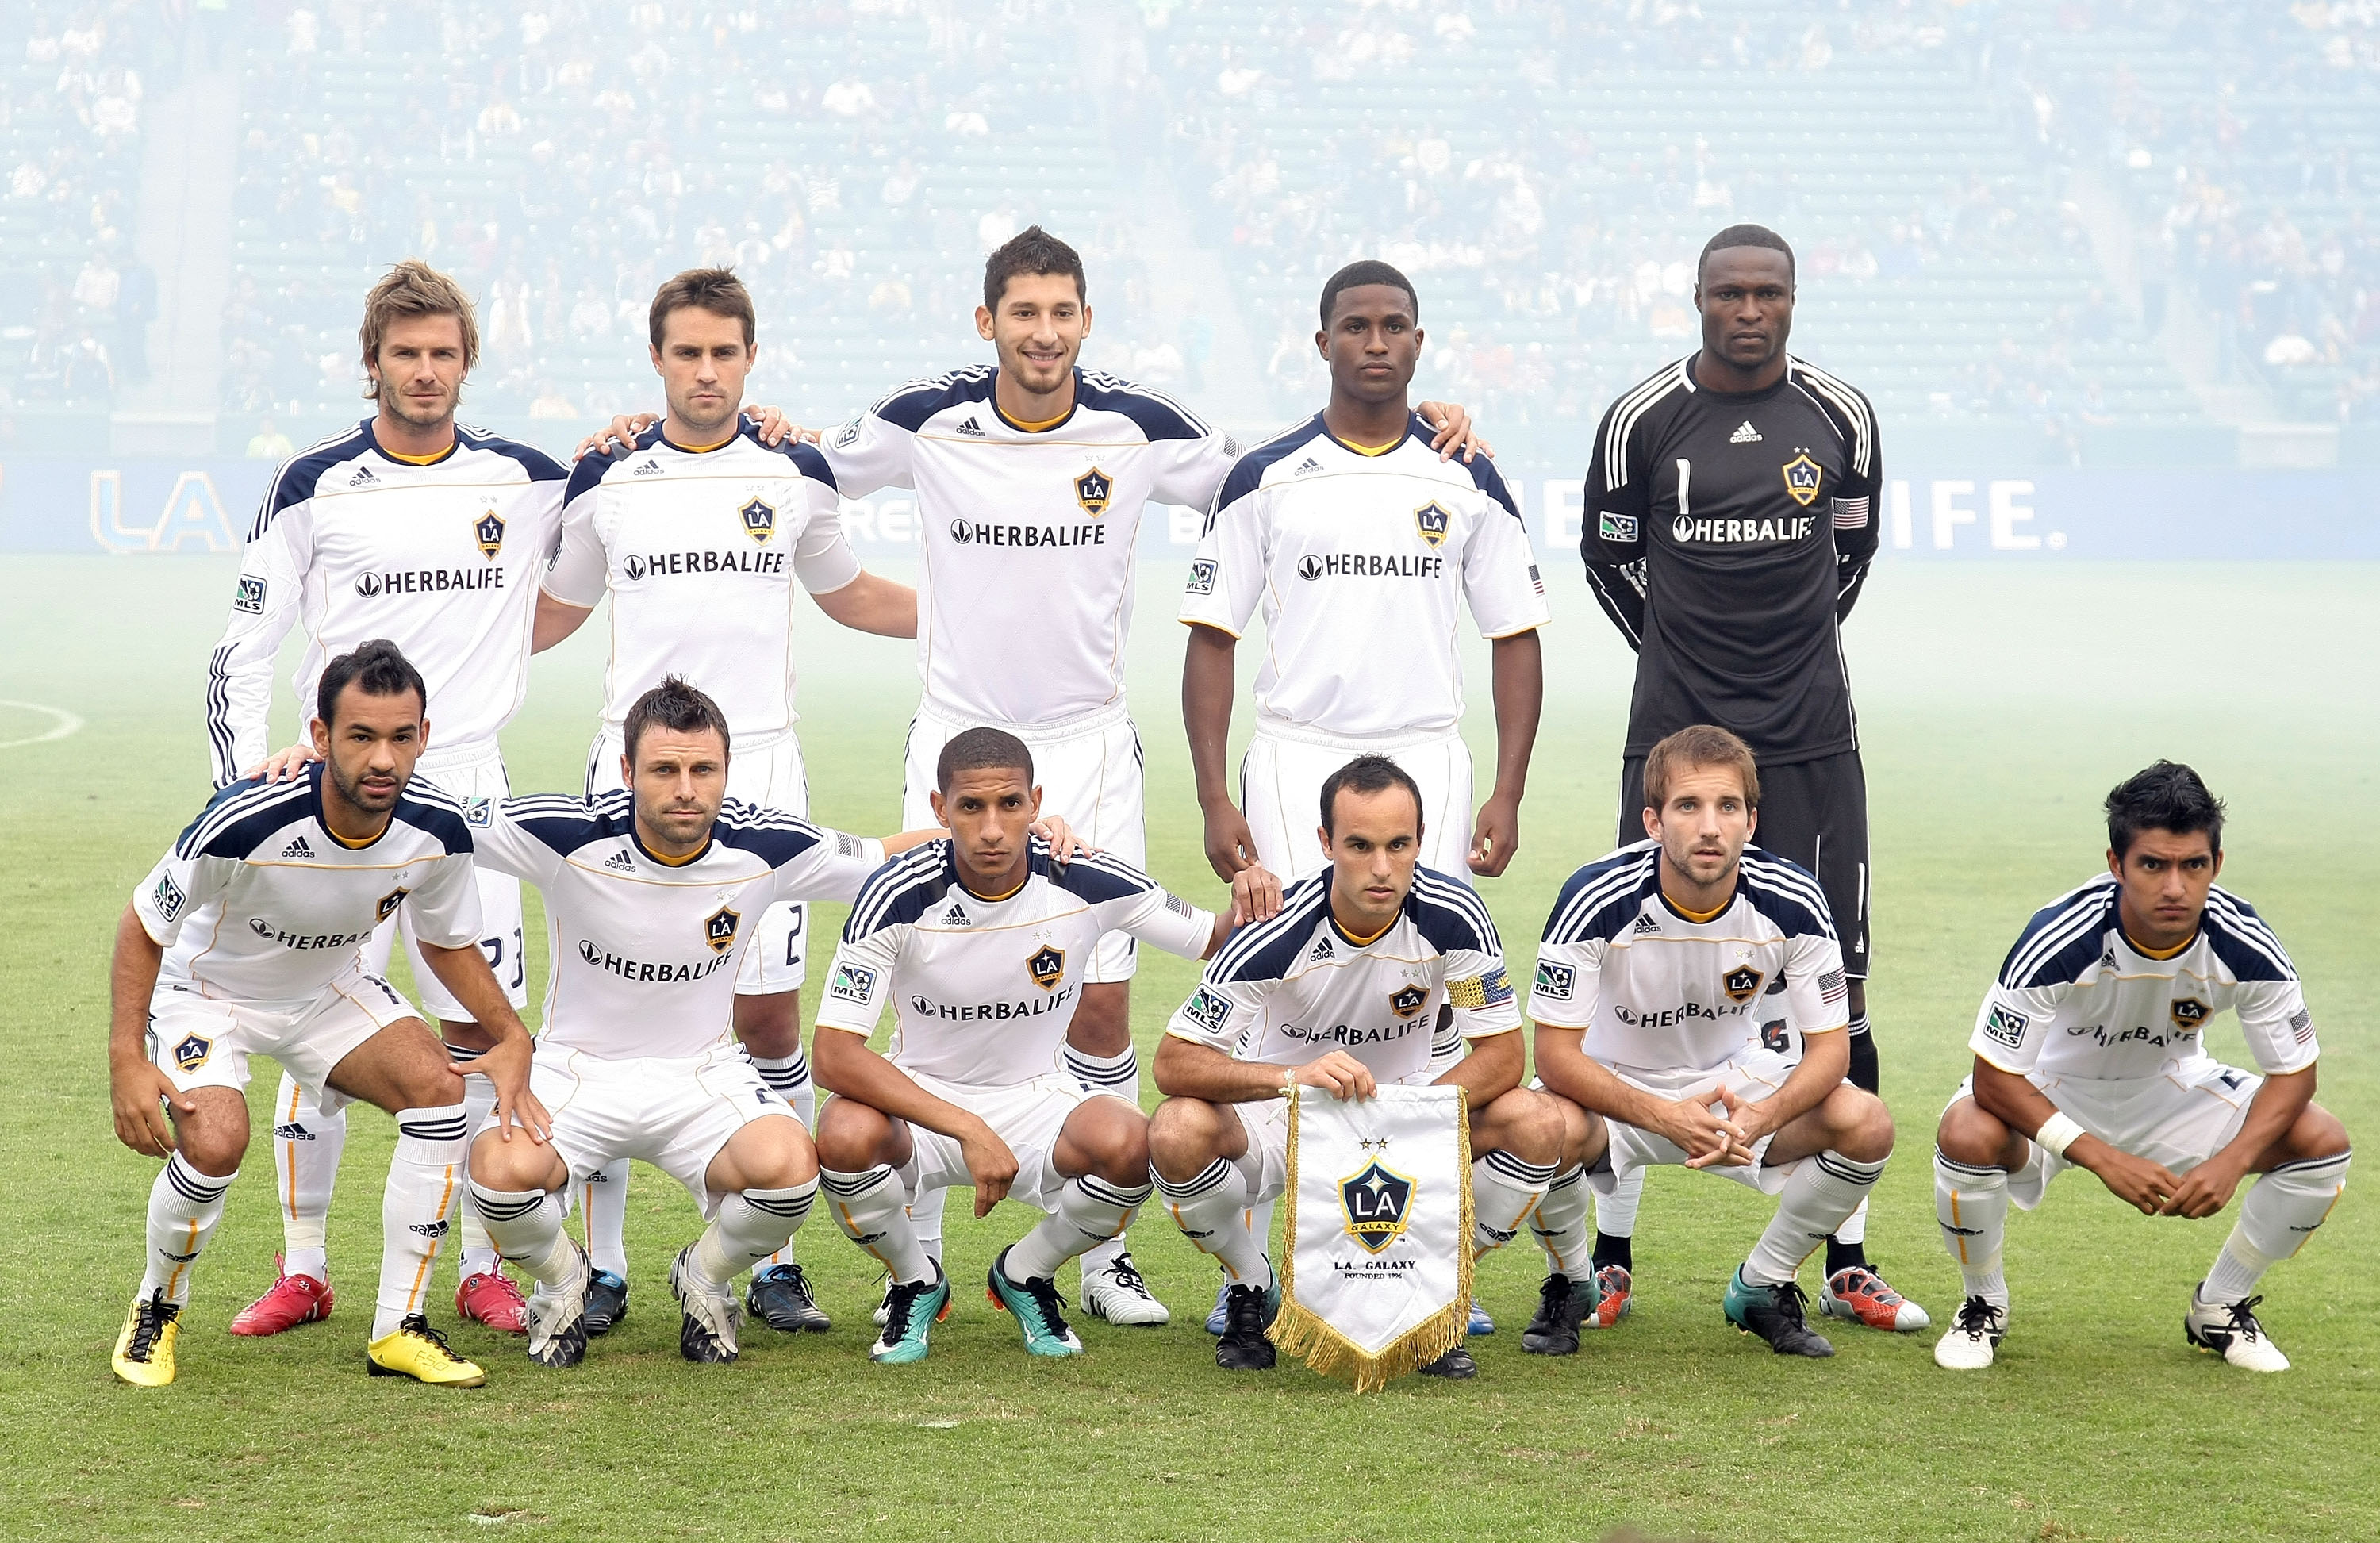 CARSON, CA - OCTOBER 24:  The Los Angeles Galaxy starting XI pose for a group photo prior to the MLS match against FC Dallas on October 24, 2010 in Carson, California. The Galaxy defeated FC Dallas 2-1.  (Photo by Victor Decolongon/Getty Images)